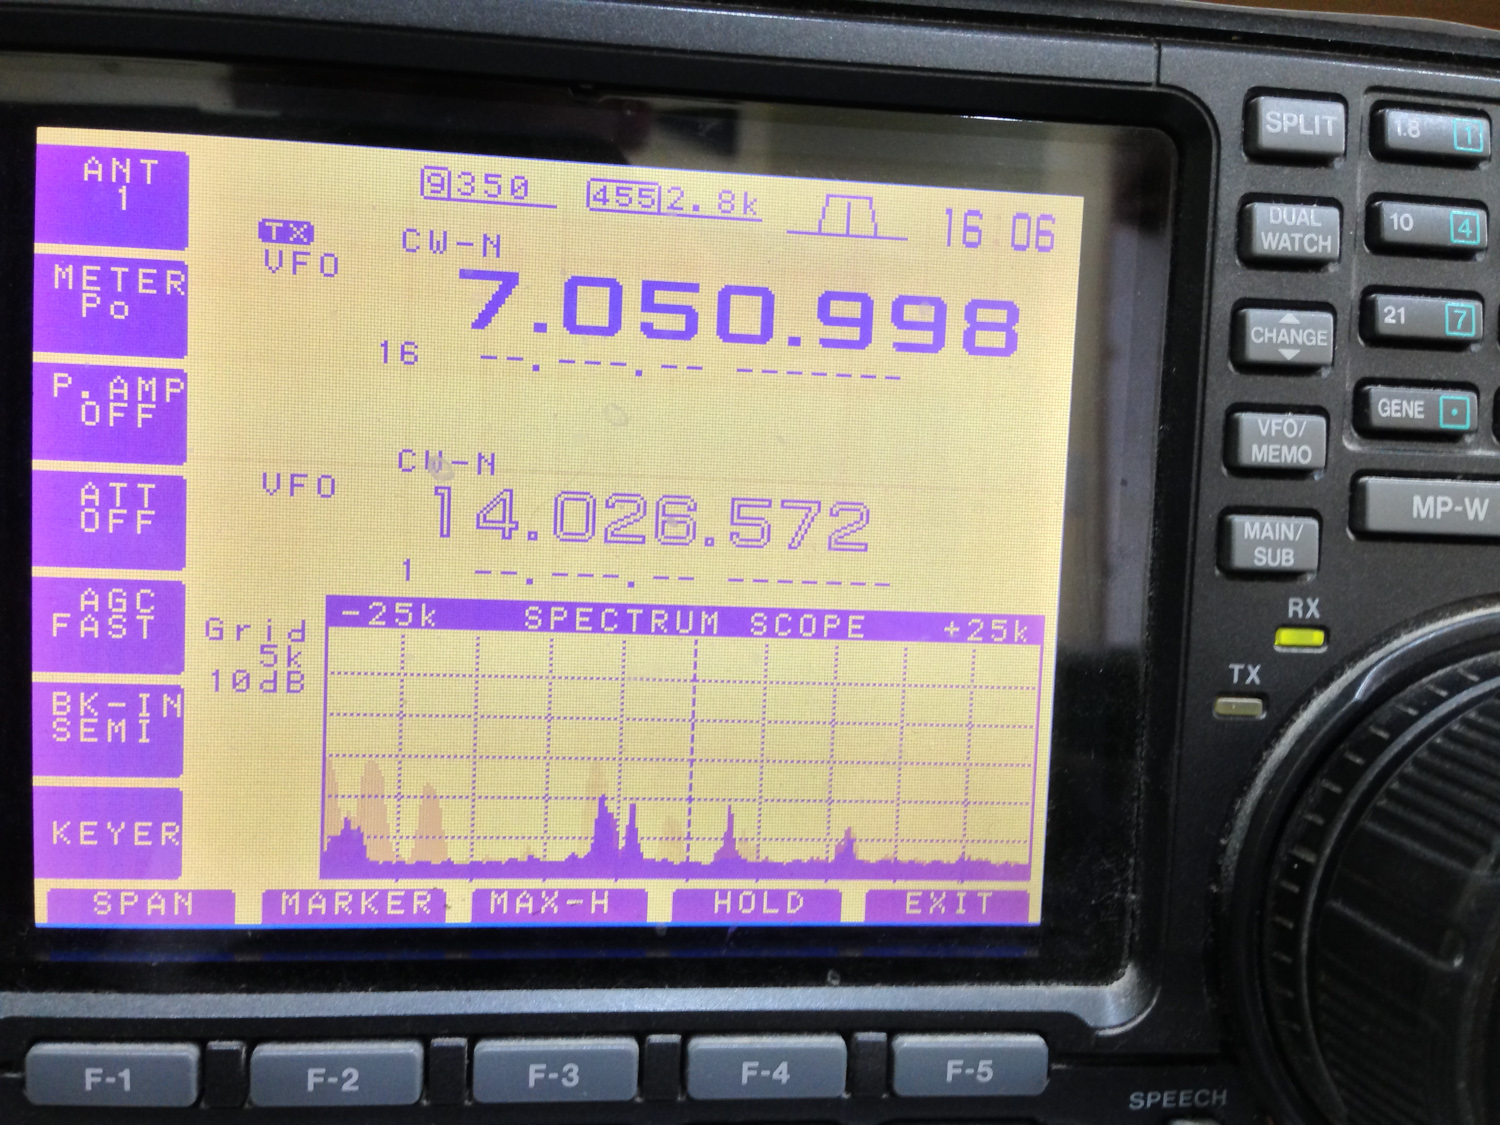 iPhone photo - IC756 for CW ops